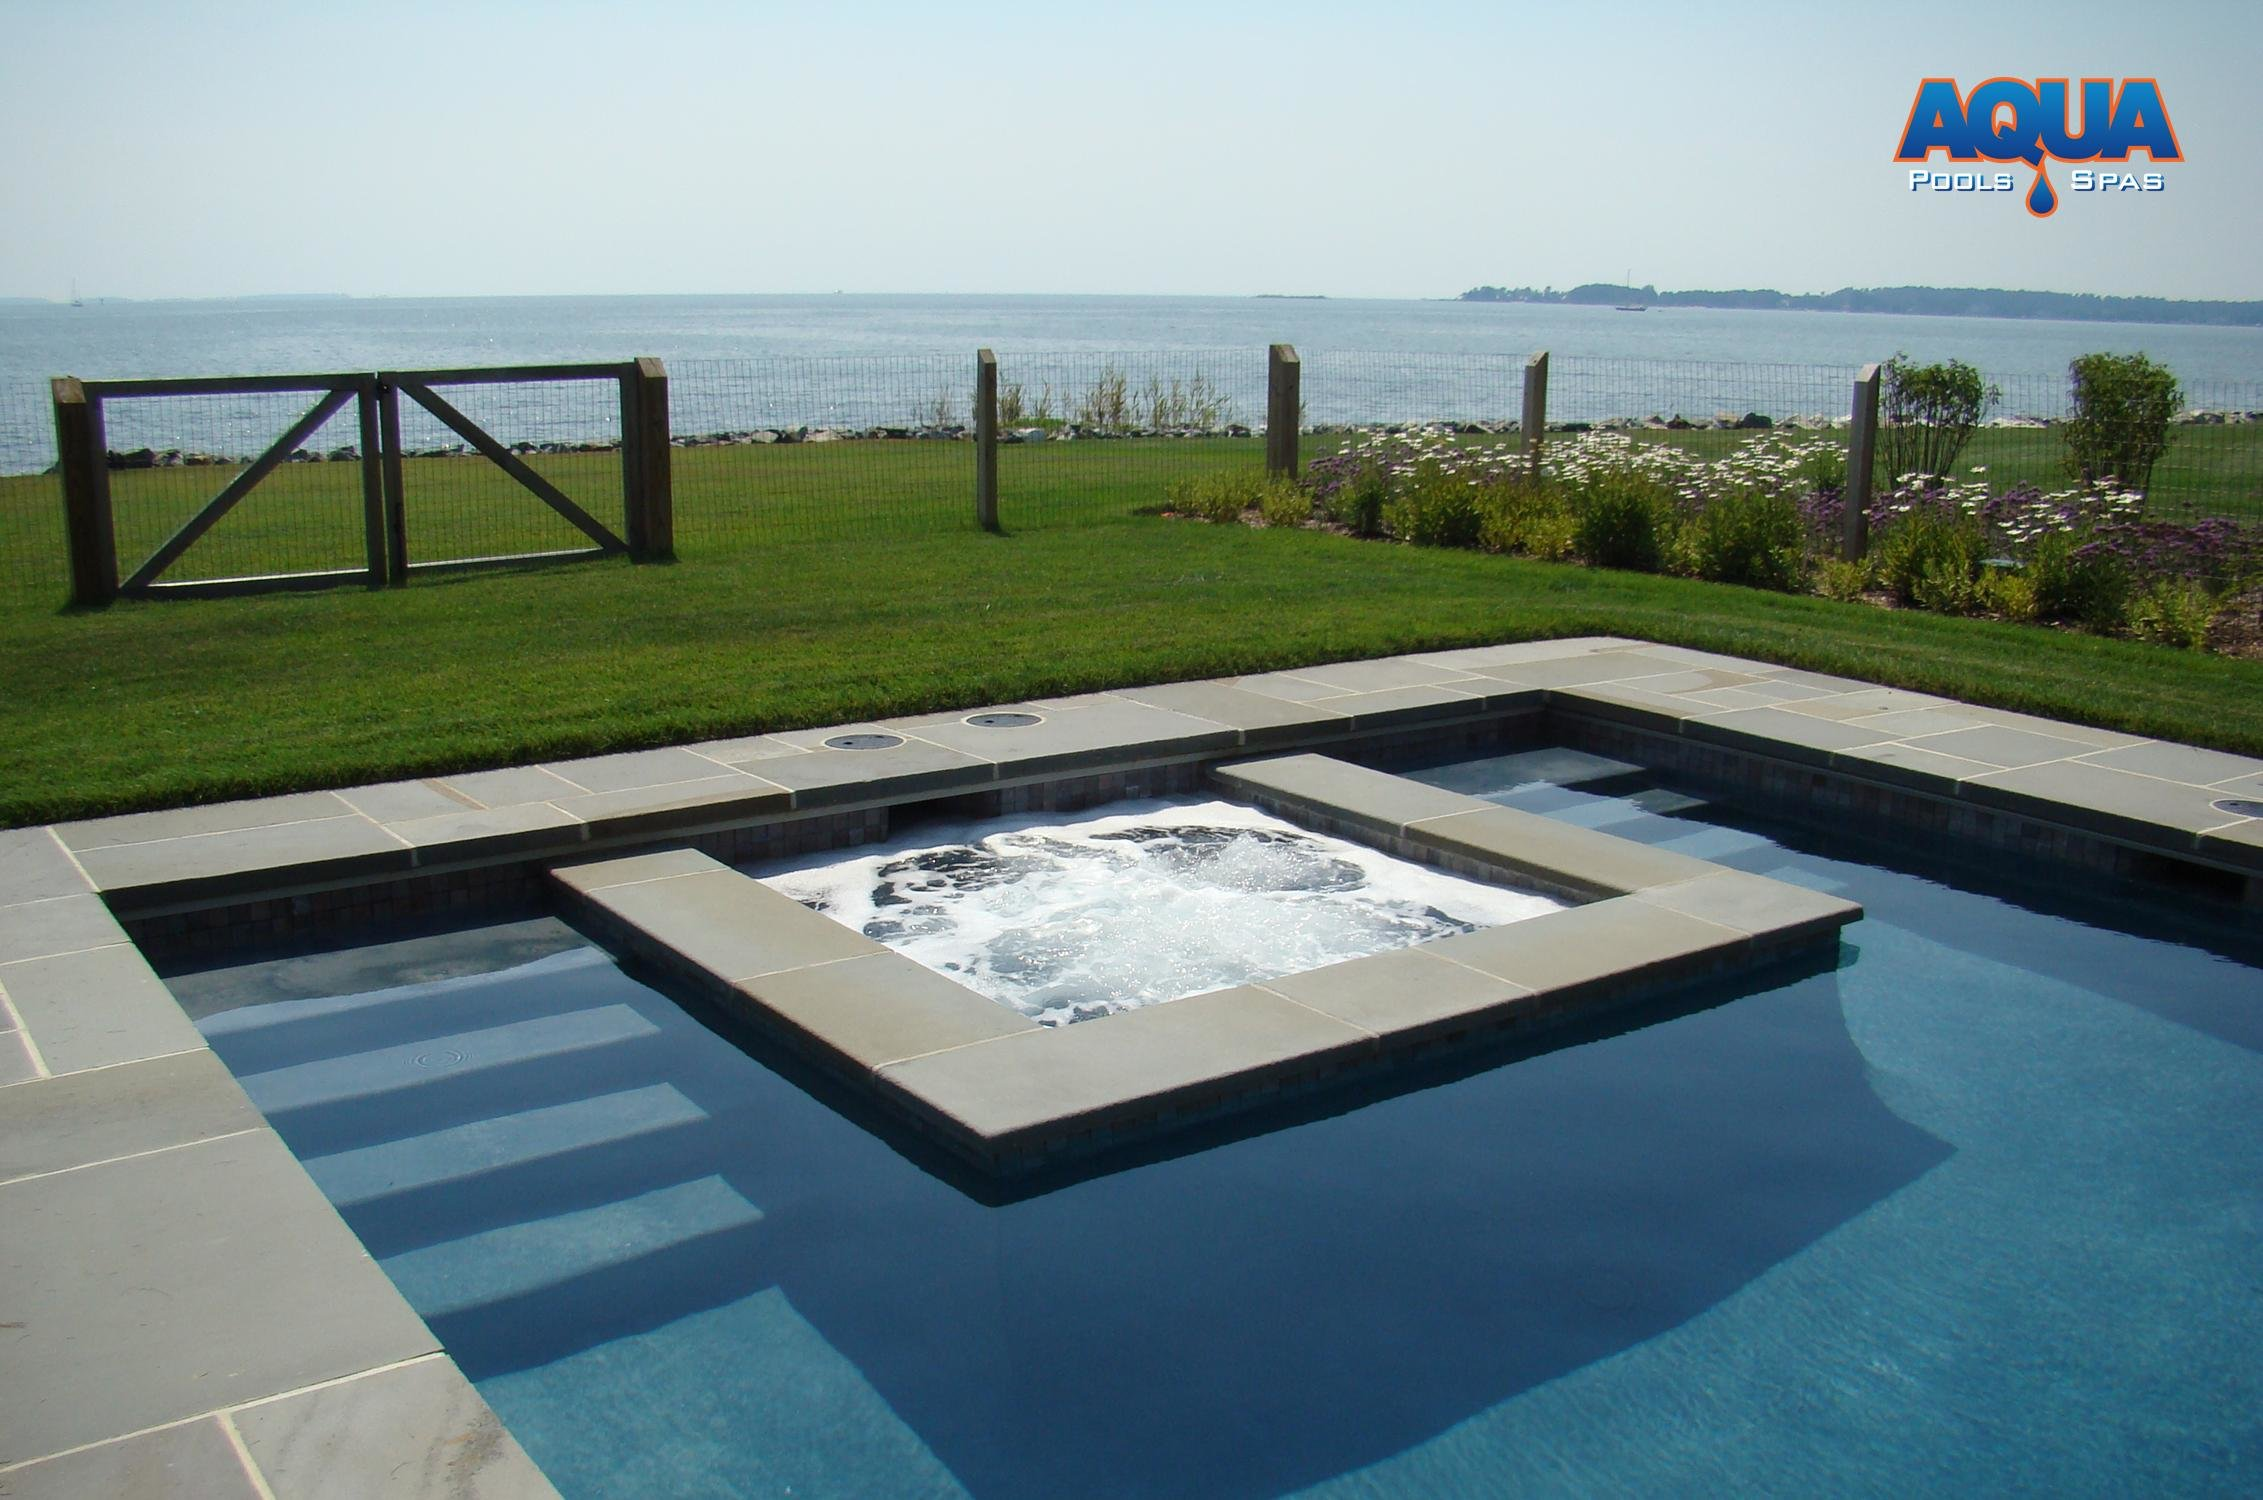 Jacuzzi Pool Dimensions Custom Spas Custom Gunite Hot Tubs Aqua Pools Spas Easton Maryland